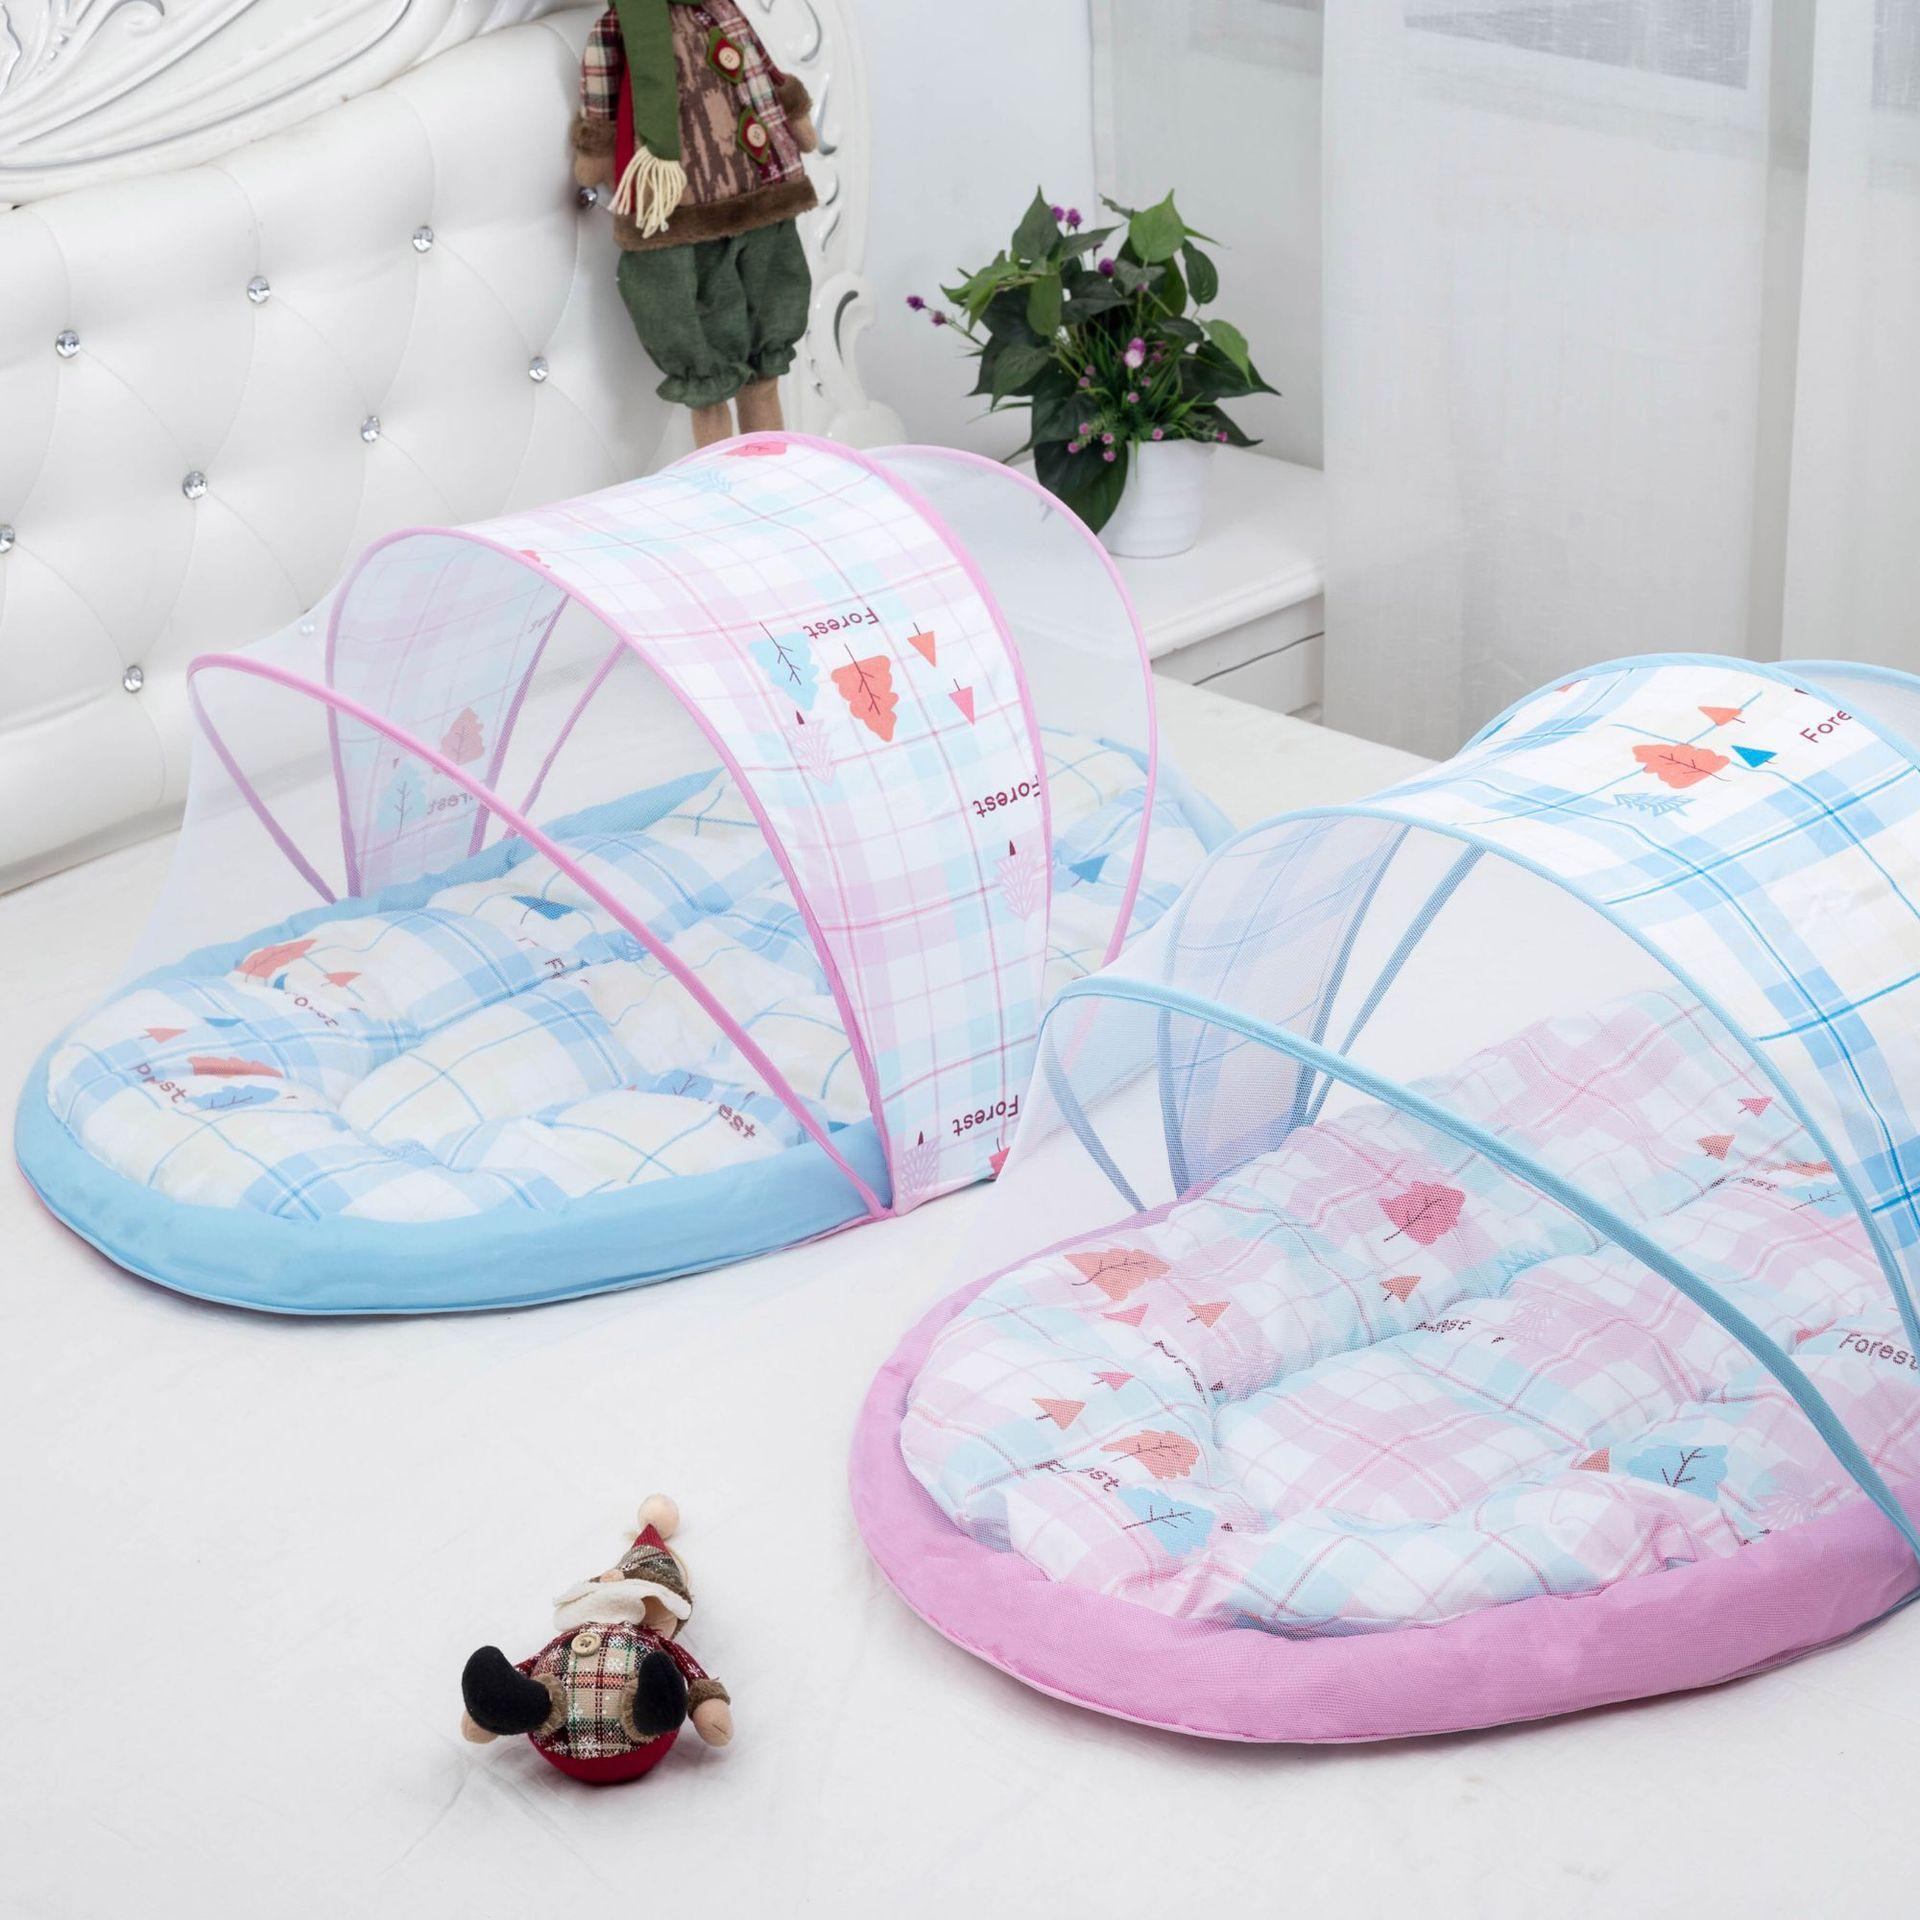 Portable Baby Crib Mosquito Net Tent Multi-Function Infant Foldable Mosquito Netting for 0-3 Year Old Babies ...